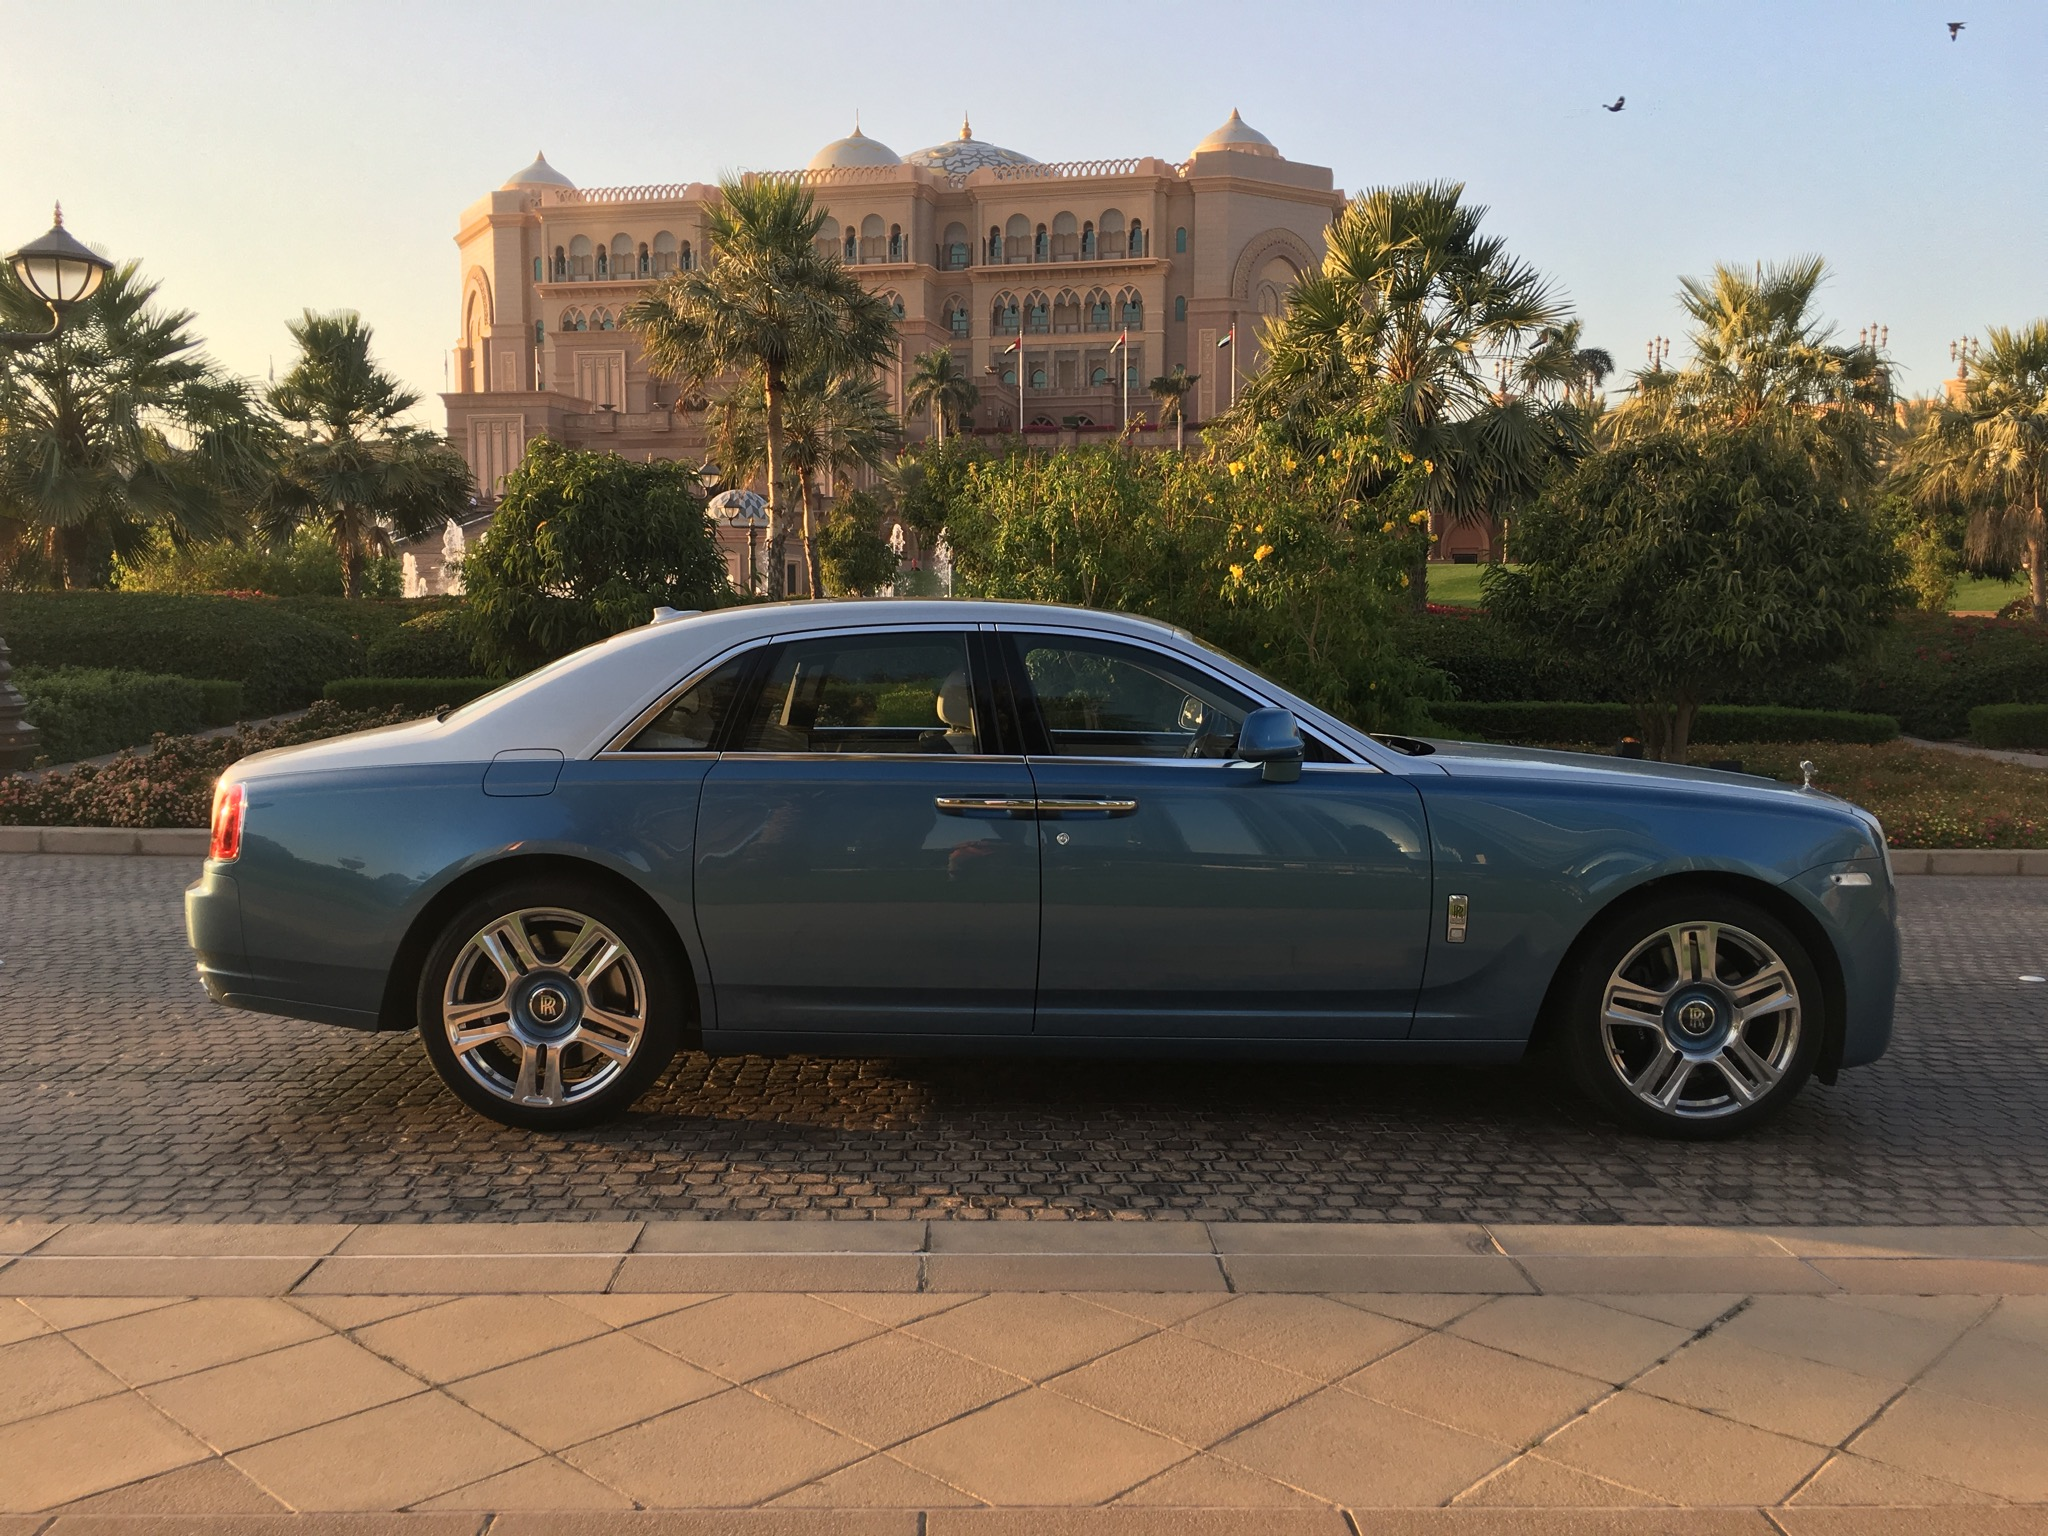 2016 rolls royce ghost series ii review photos caradvice. Black Bedroom Furniture Sets. Home Design Ideas